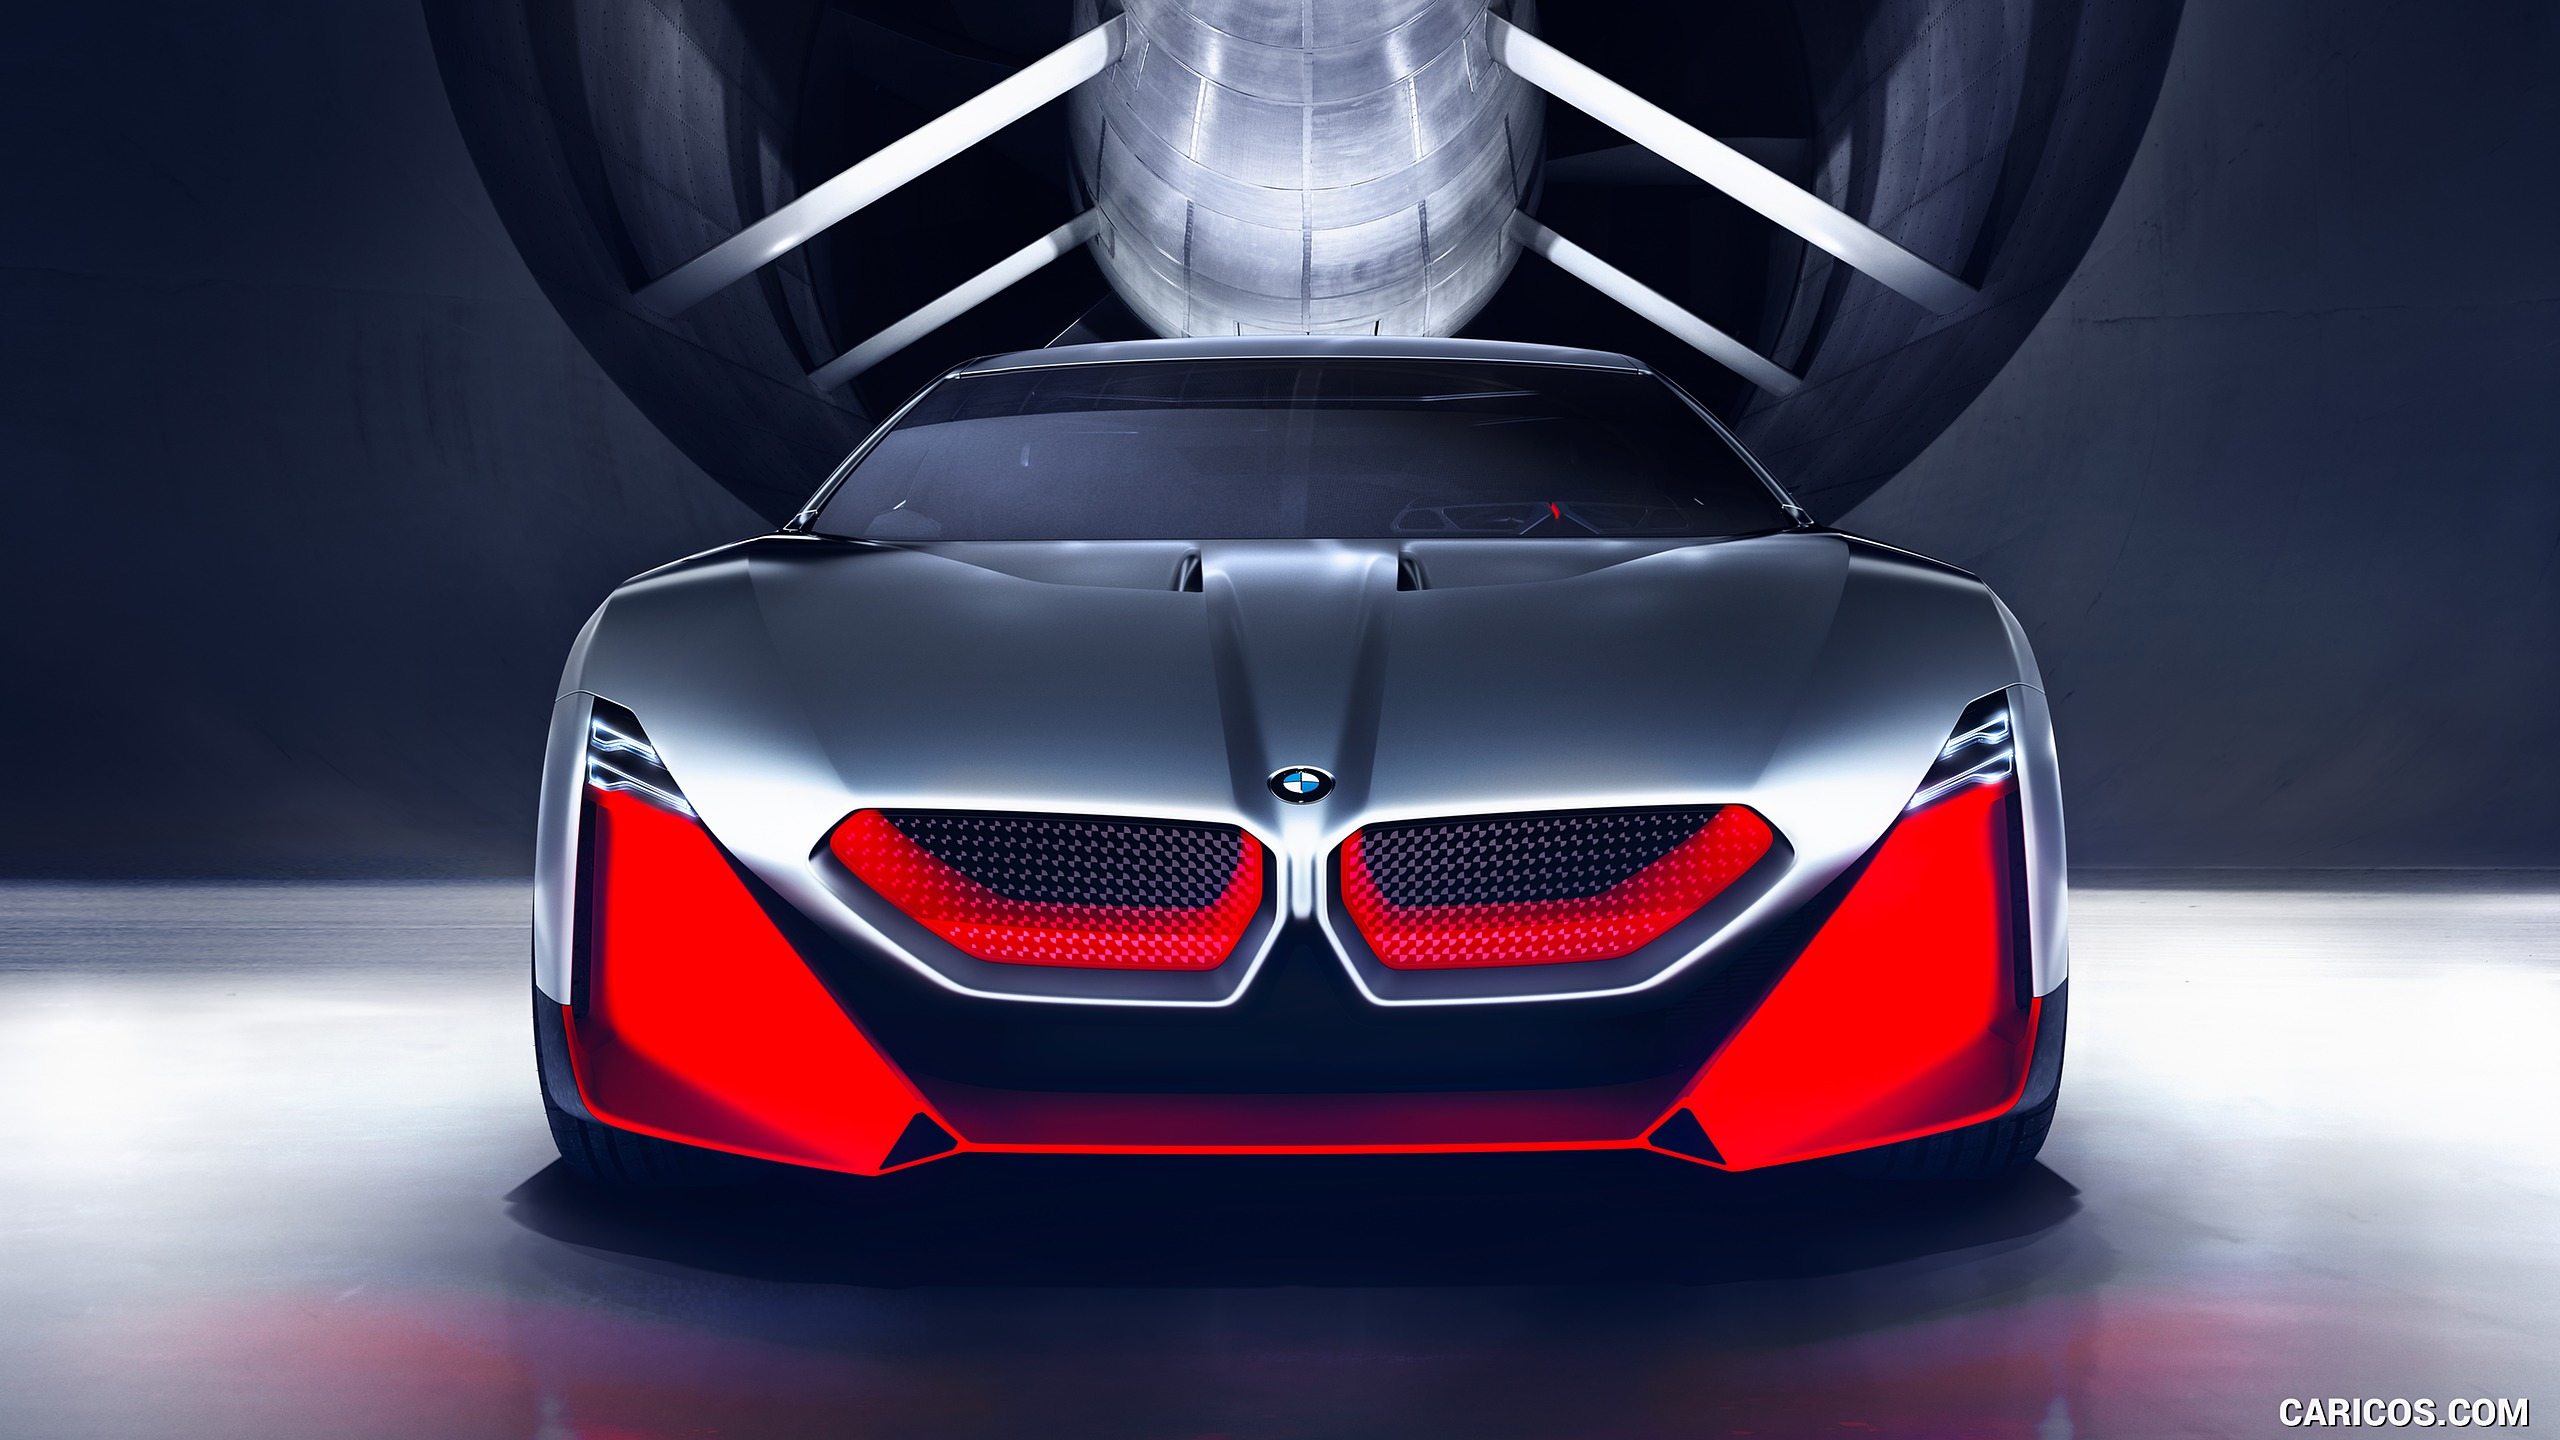 2019 BMW Vision M Next   Front HD Wallpaper 55 2560x1440